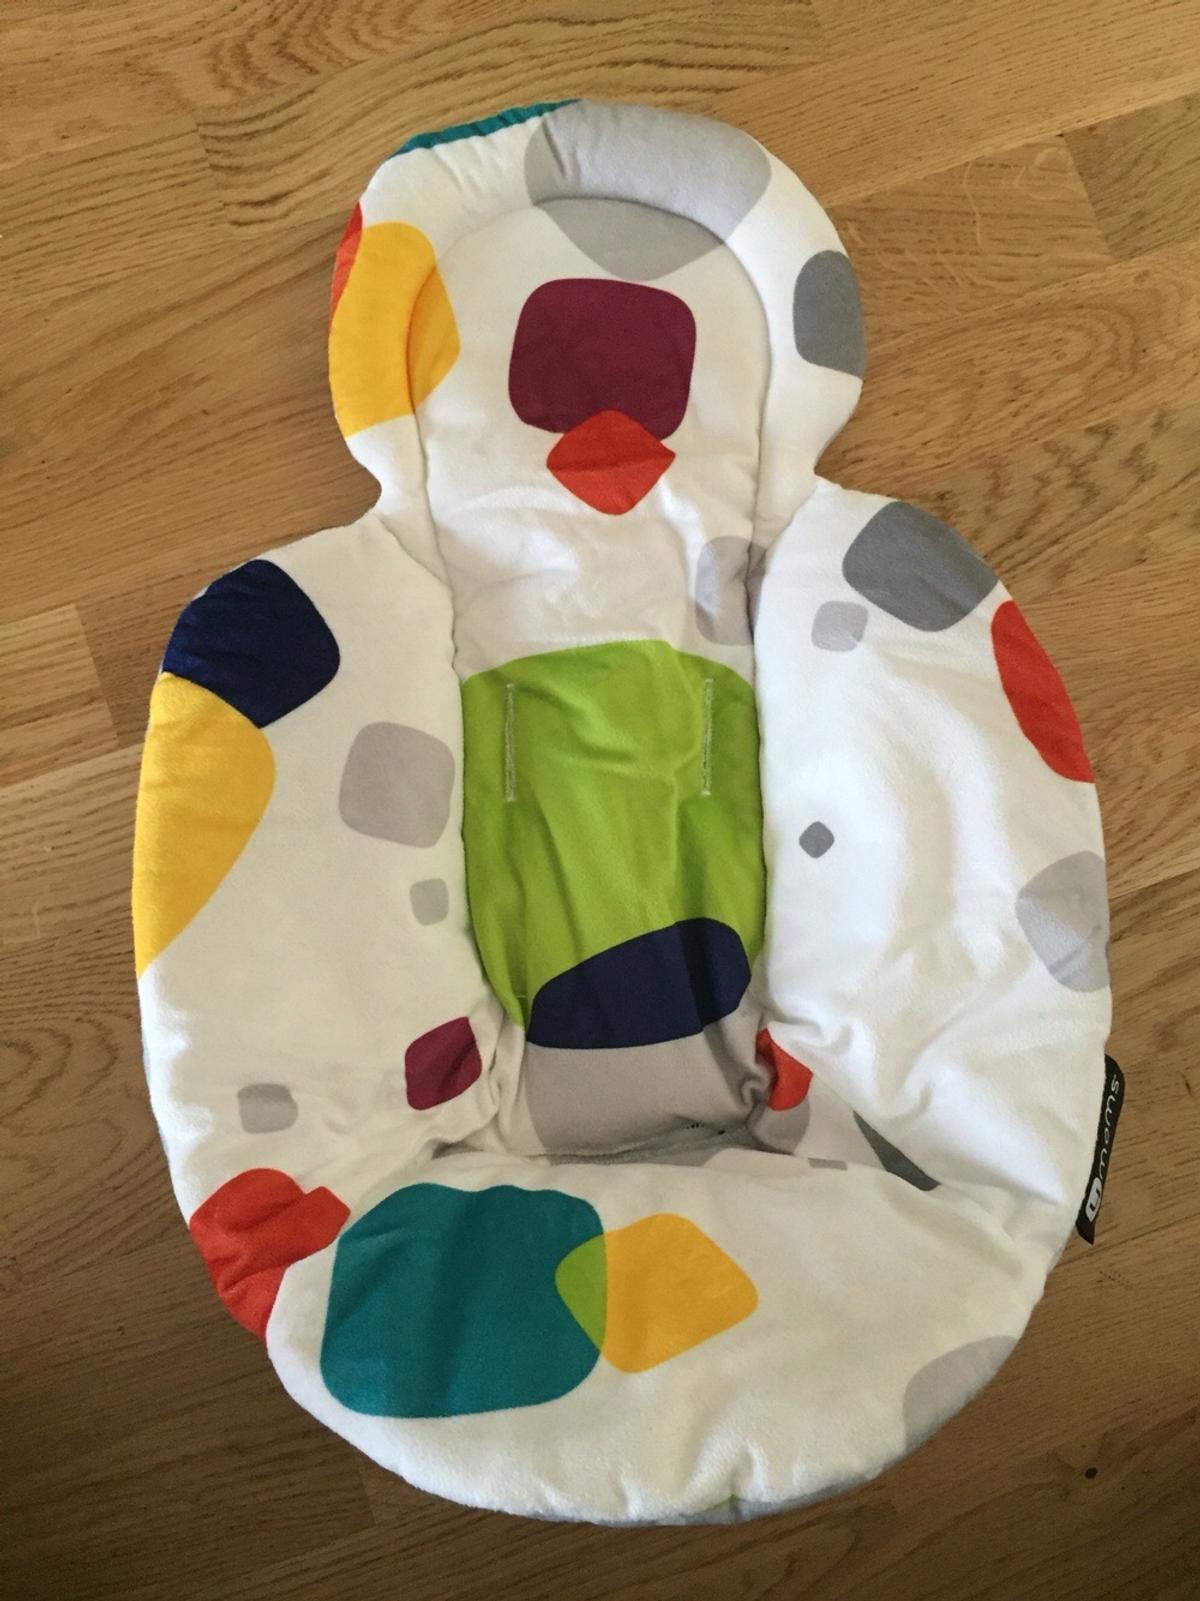 4moms Mamaroo 3d Babywippe In 4600 Wels For 12000 For Sale Shpock